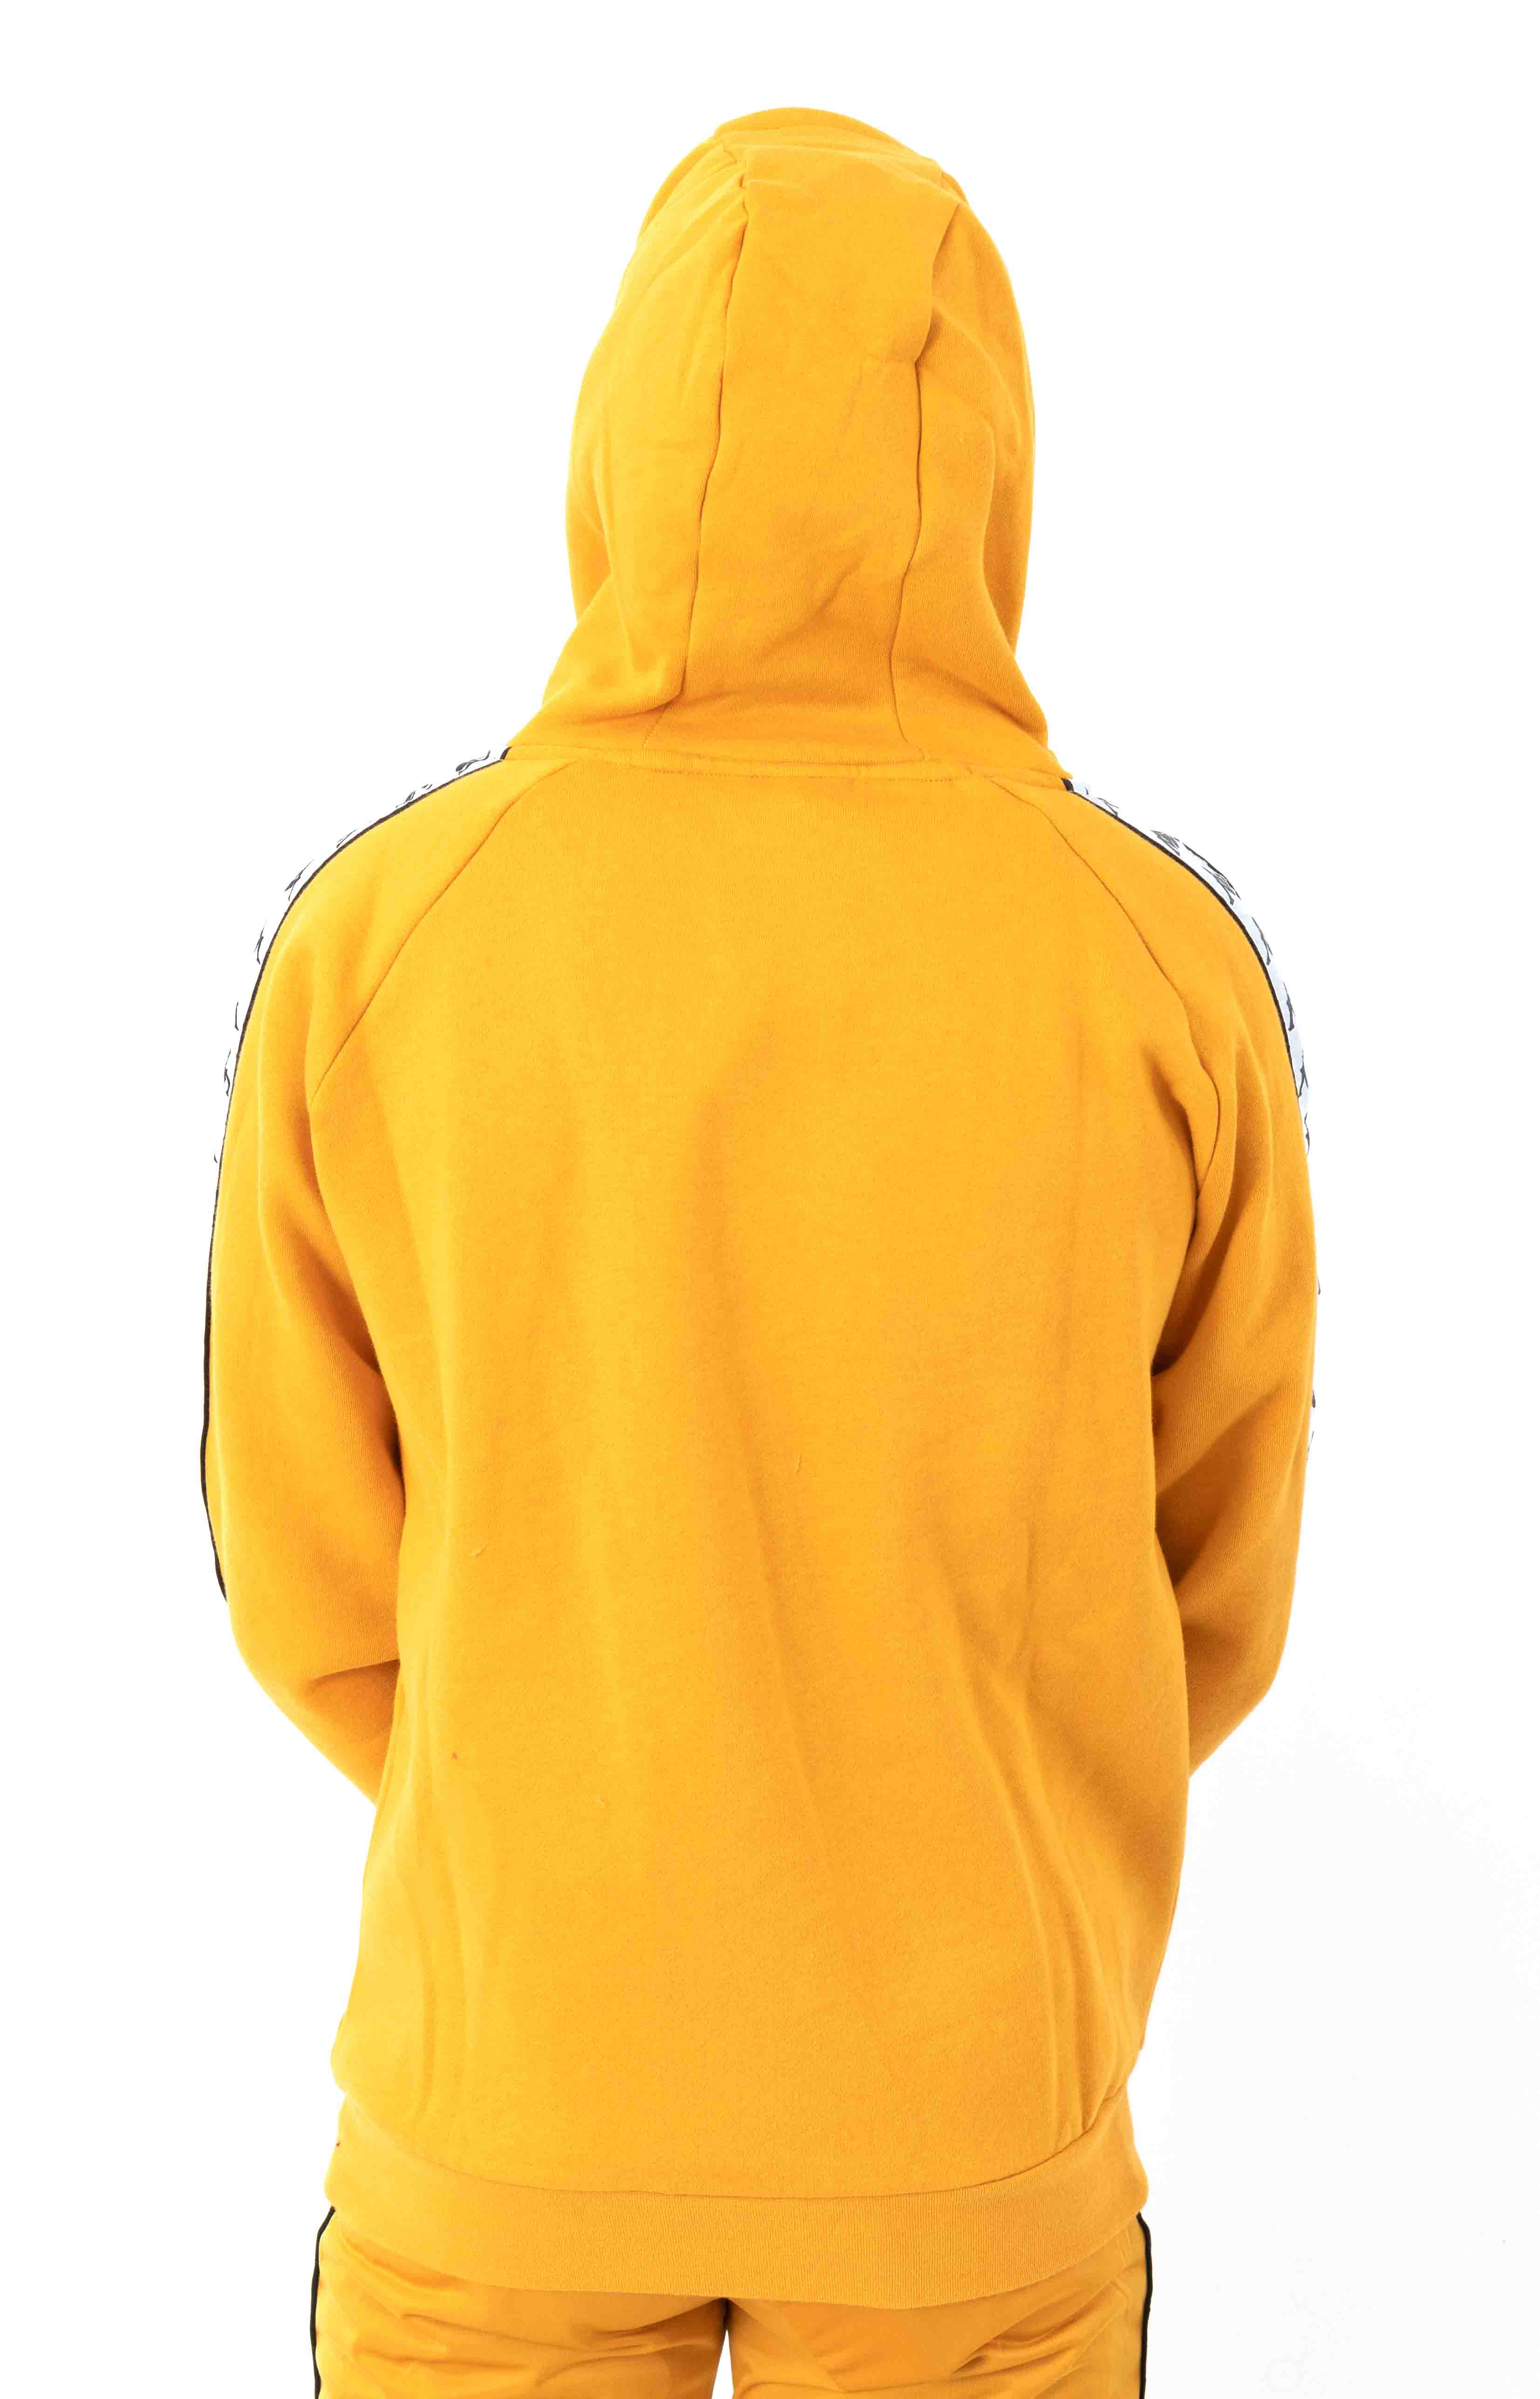 222 Banda Authentic Hurtado 2 Pullover Hoodie - Yellow Ochre/White 3